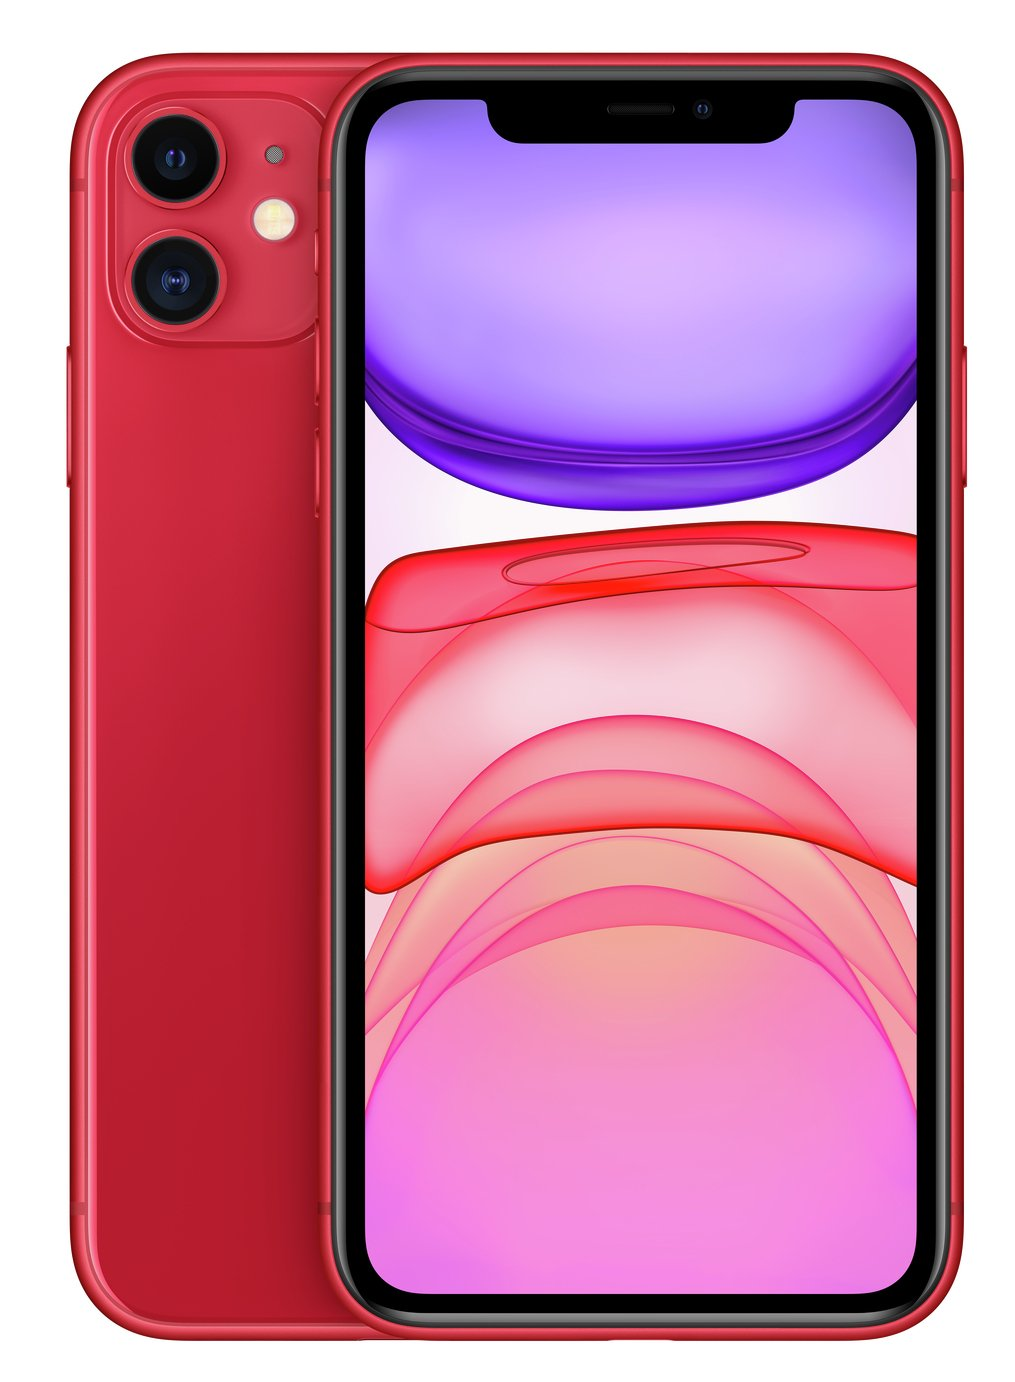 SIM Free iPhone 11 64GB Product Red - Pre-Order